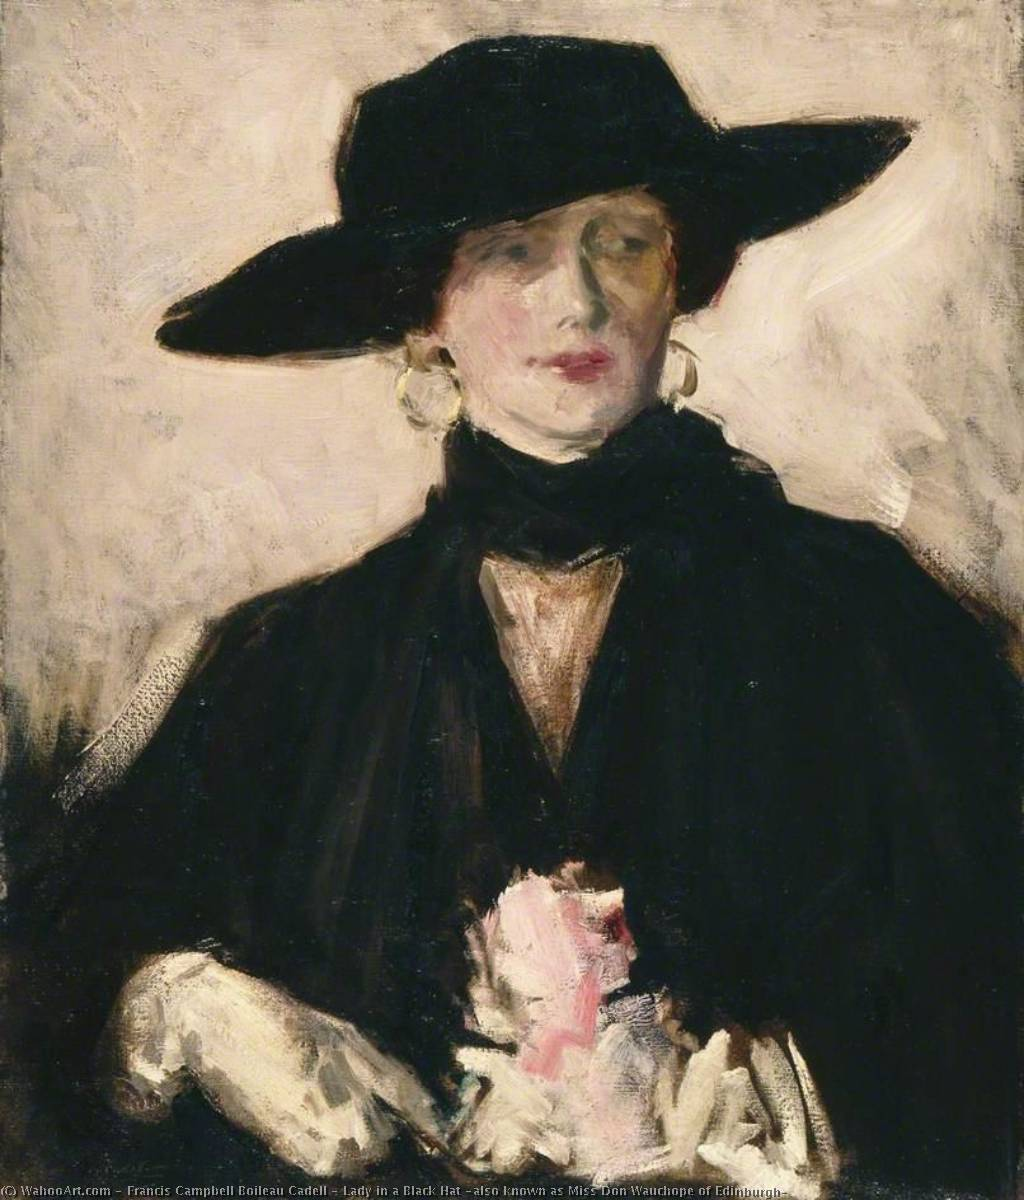 Lady in a Black Hat (also known as Miss Don Wauchope of Edinburgh), 1929 by Francis Campbell Boileau Cadell (1883-1937) | Famous Paintings Reproductions | WahooArt.com